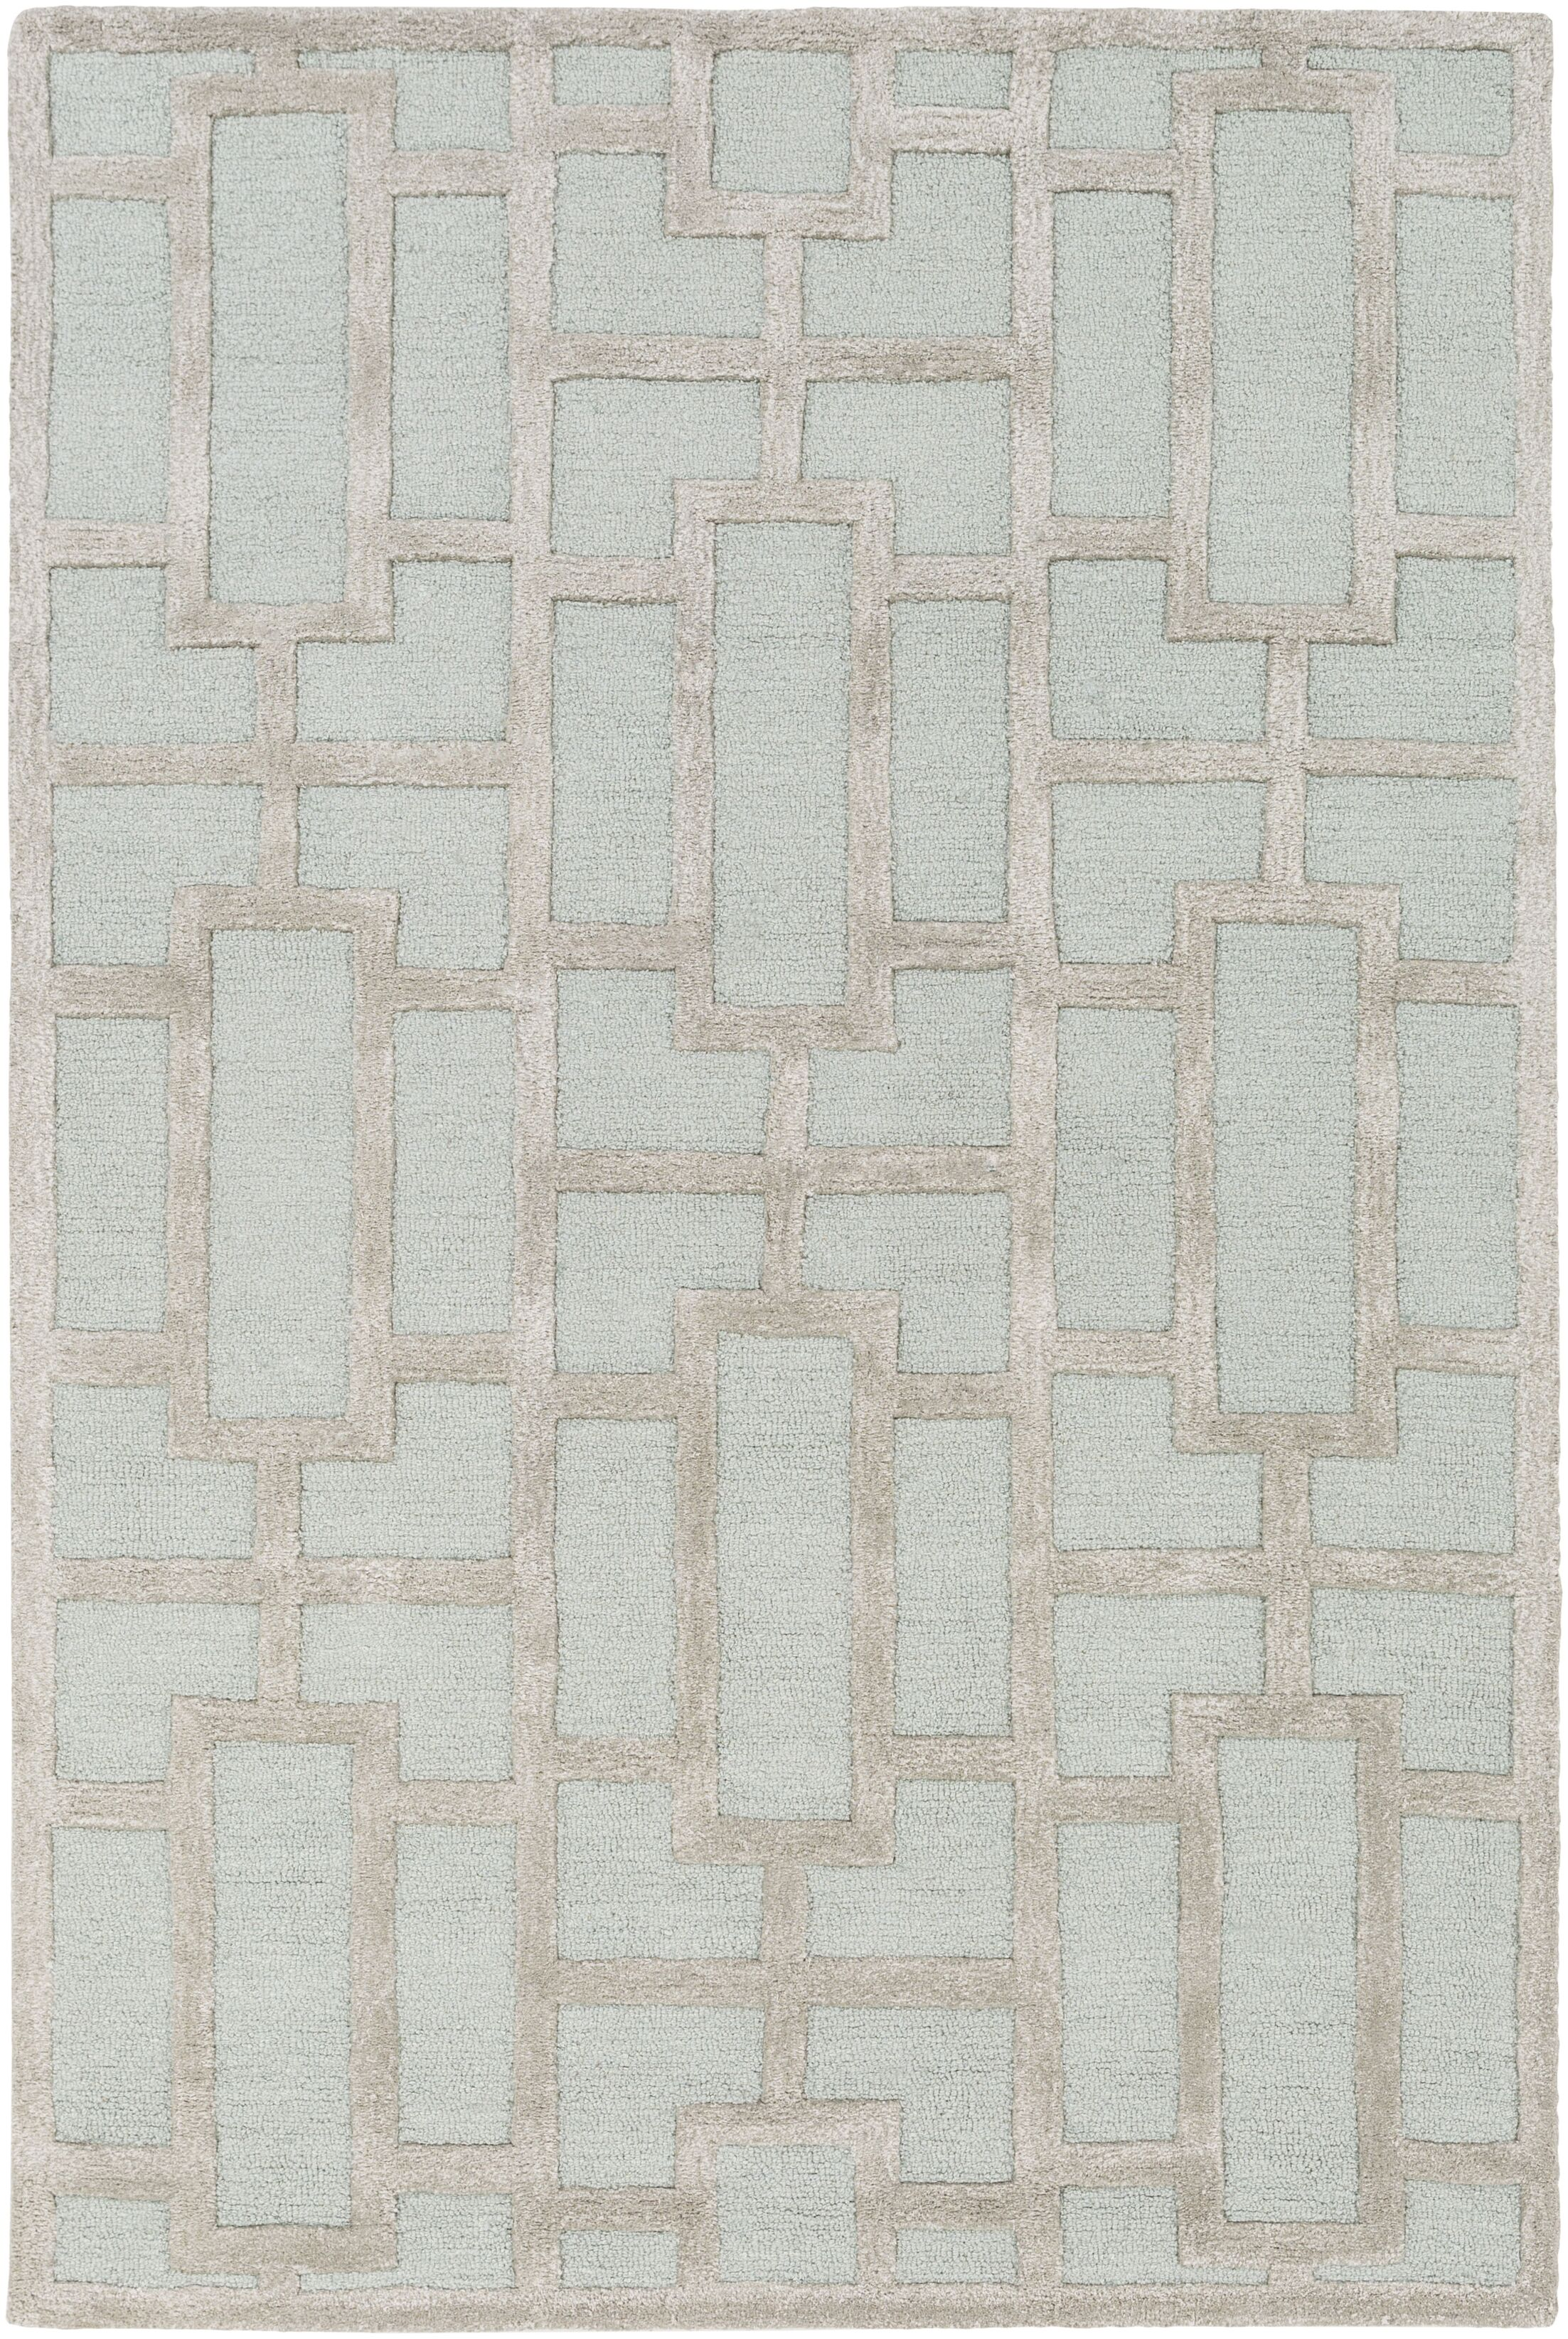 Perpetua Hand-Tufted Light Blue Area Rug Rug Size: Rectangle 6' x 9'